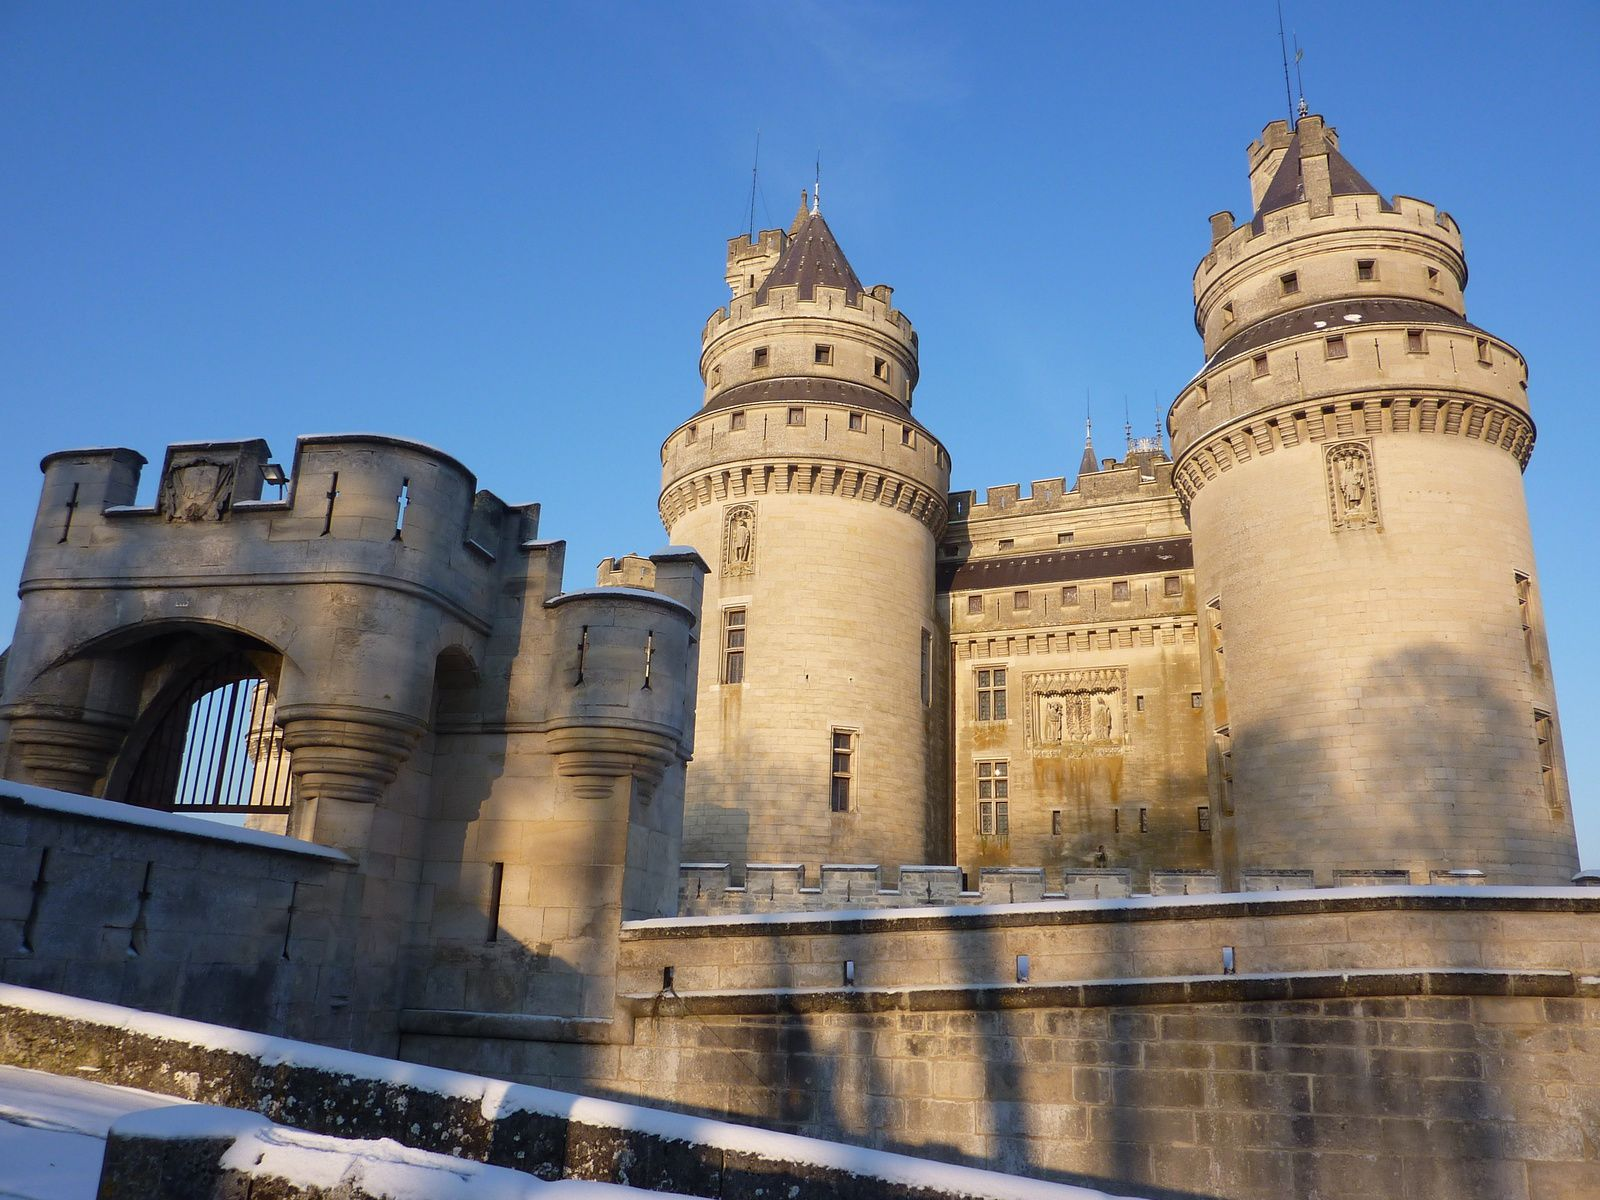 Pierrefonds, Oise, France.